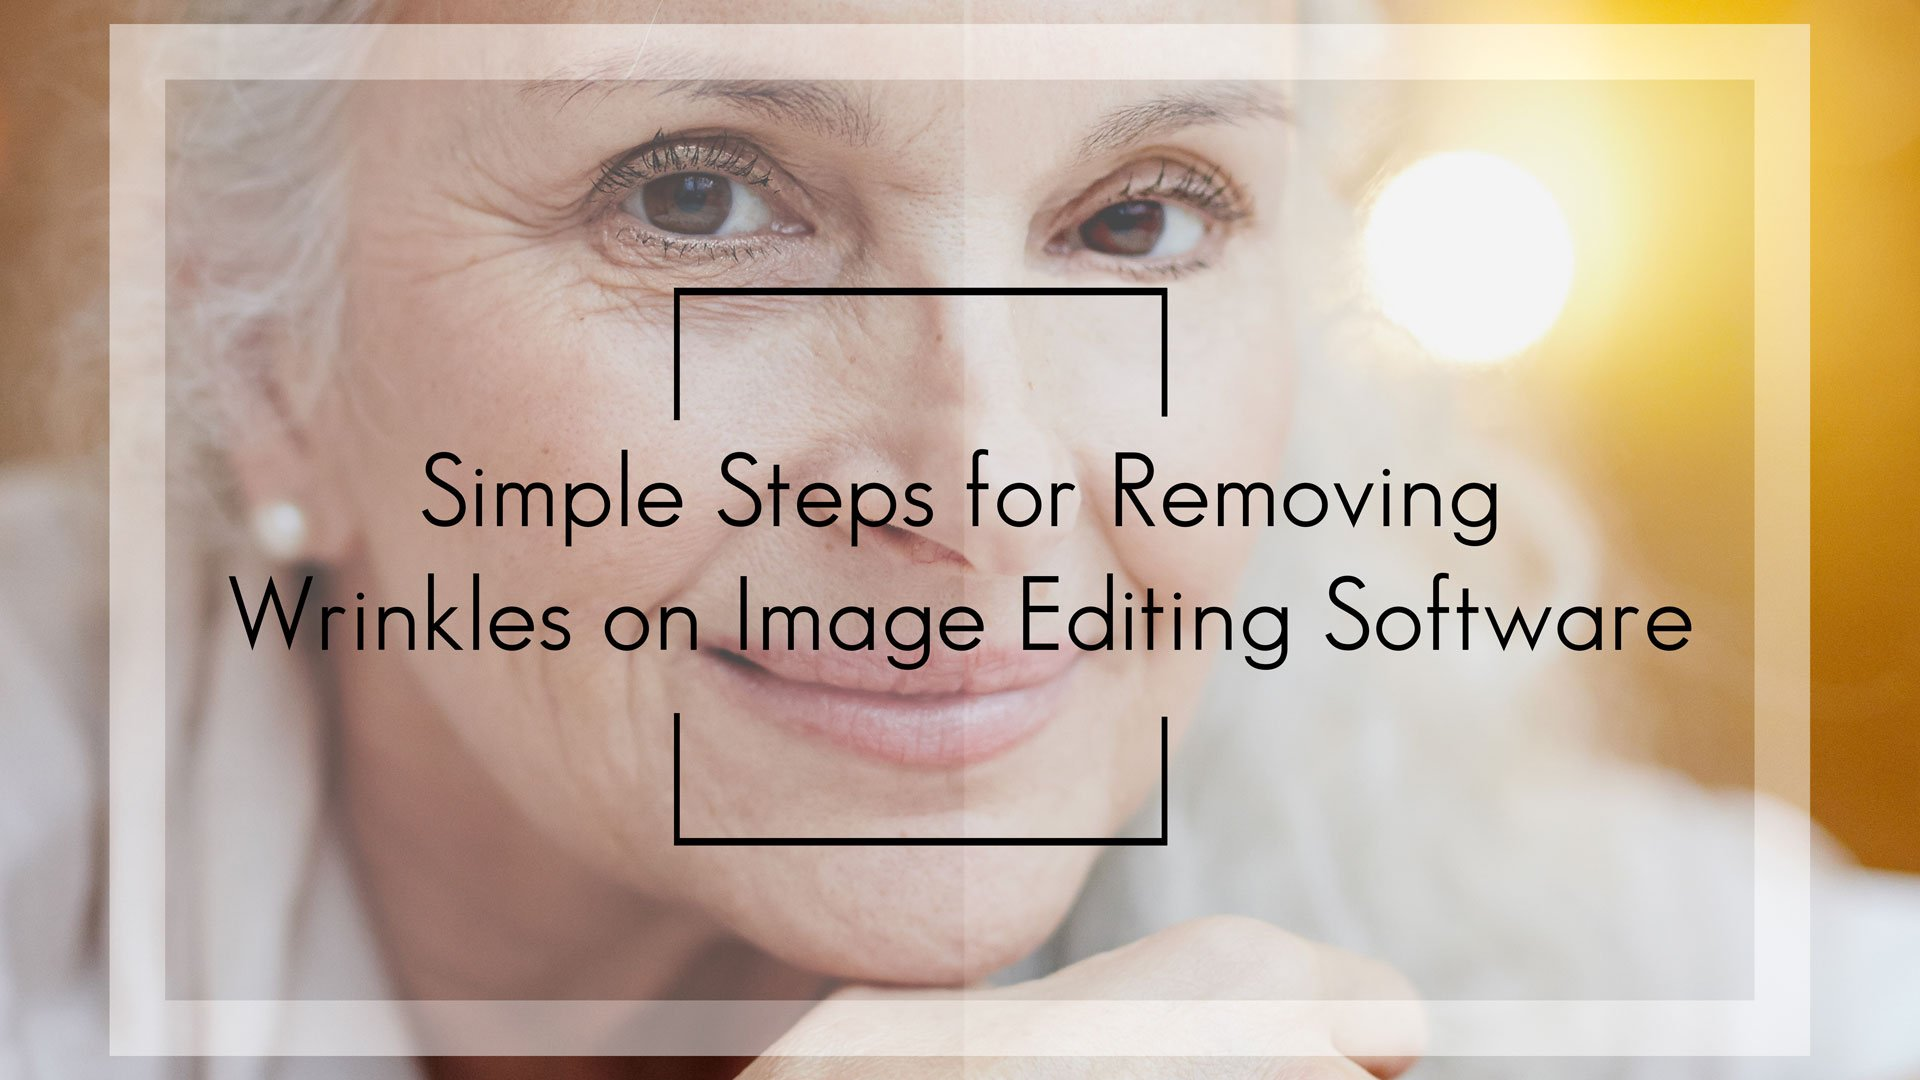 Simple Step for Removing Wrinkles on Image Editing Software